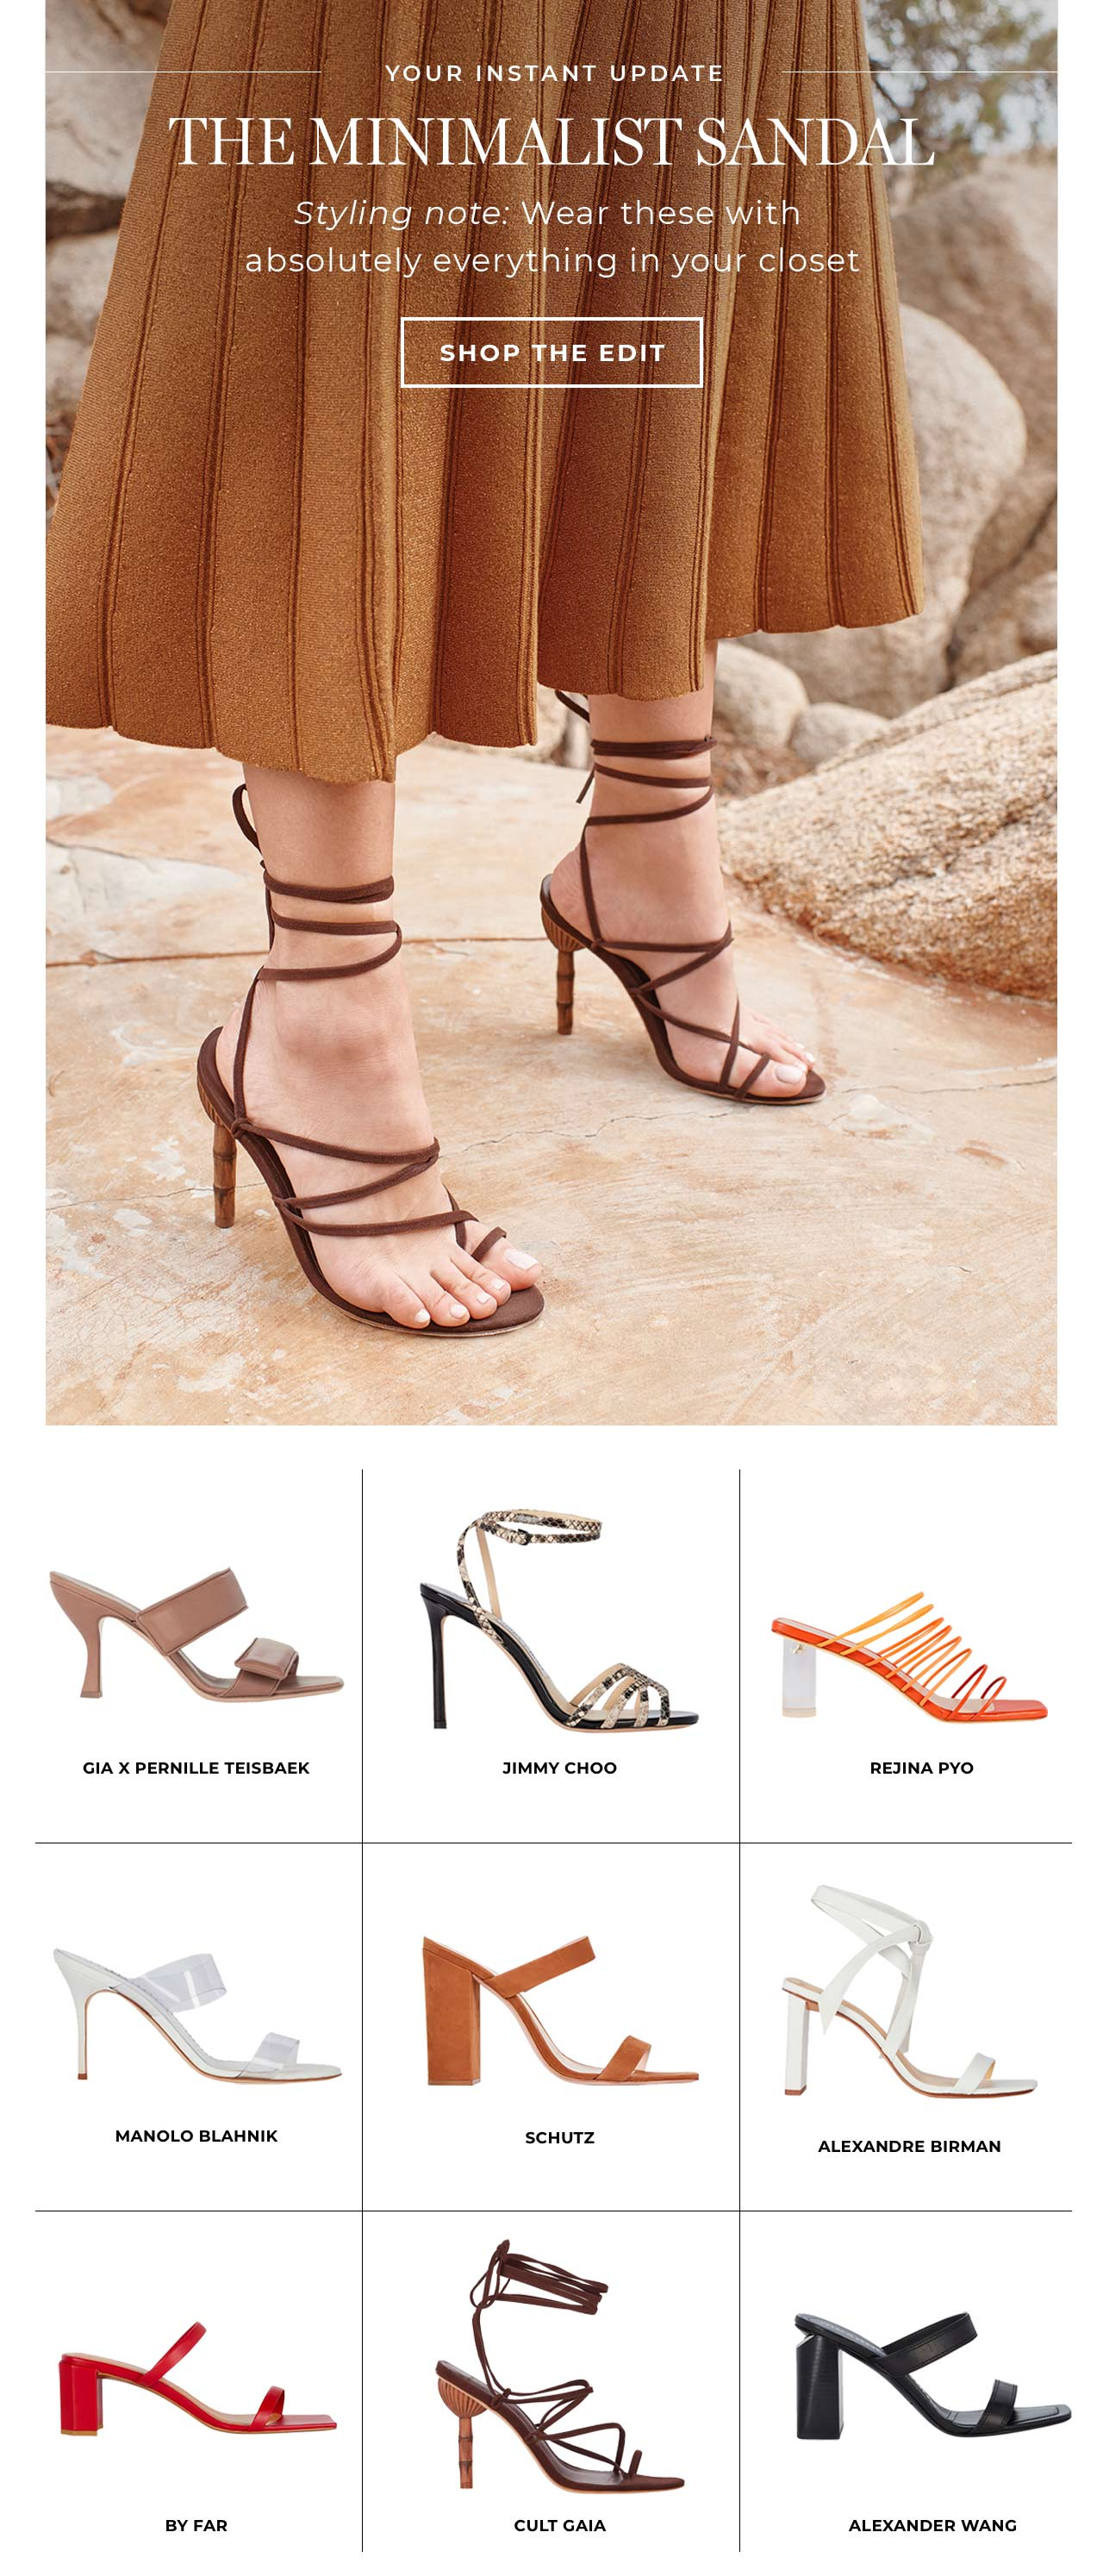 Styling note: Wear minimalist sandals with absolutely everything in your closet